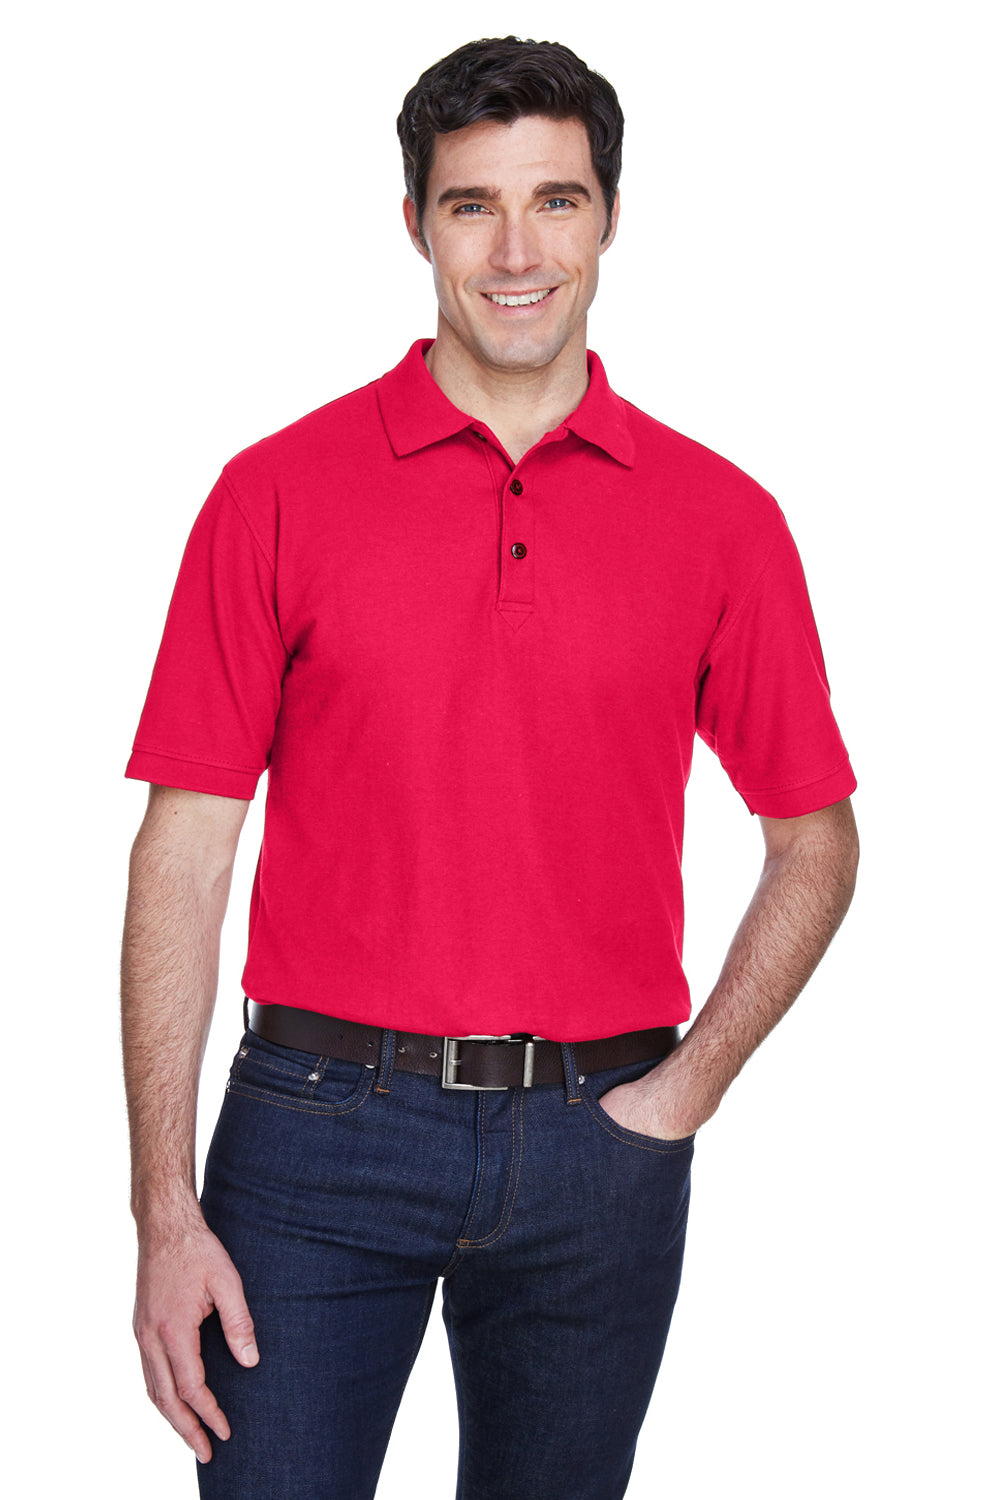 UltraClub 8540 Mens Whisper Short Sleeve Polo Shirt Red Front